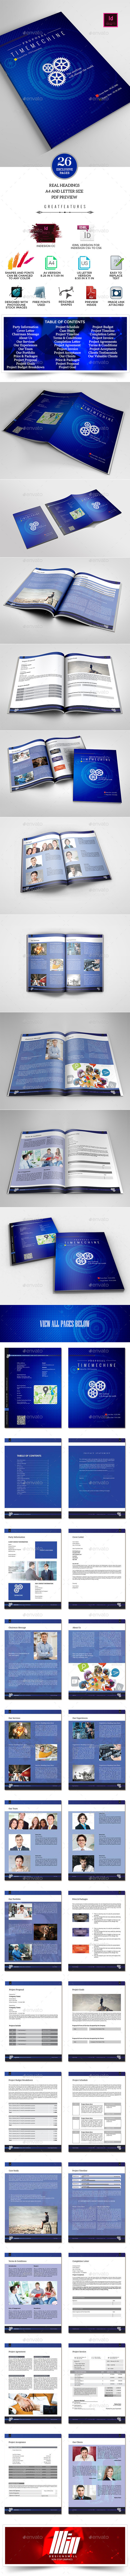 GraphicRiver Time Machine Proposal Template for Future Business 10642084